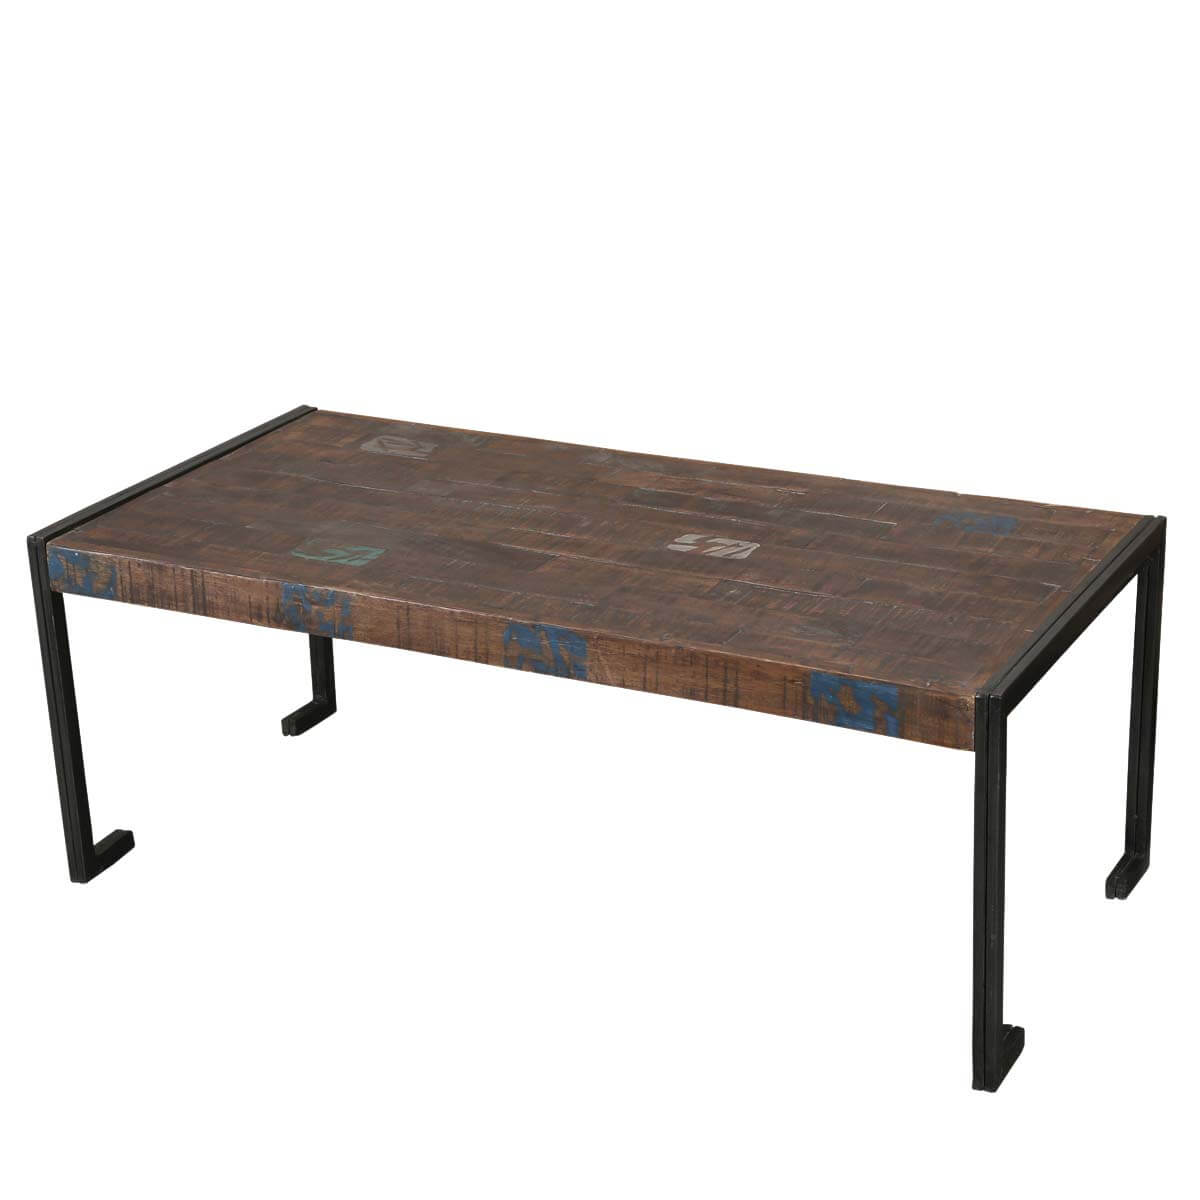 Philadelphia reclaimed wood industrial metal frame rustic for Reclaimed coffee table